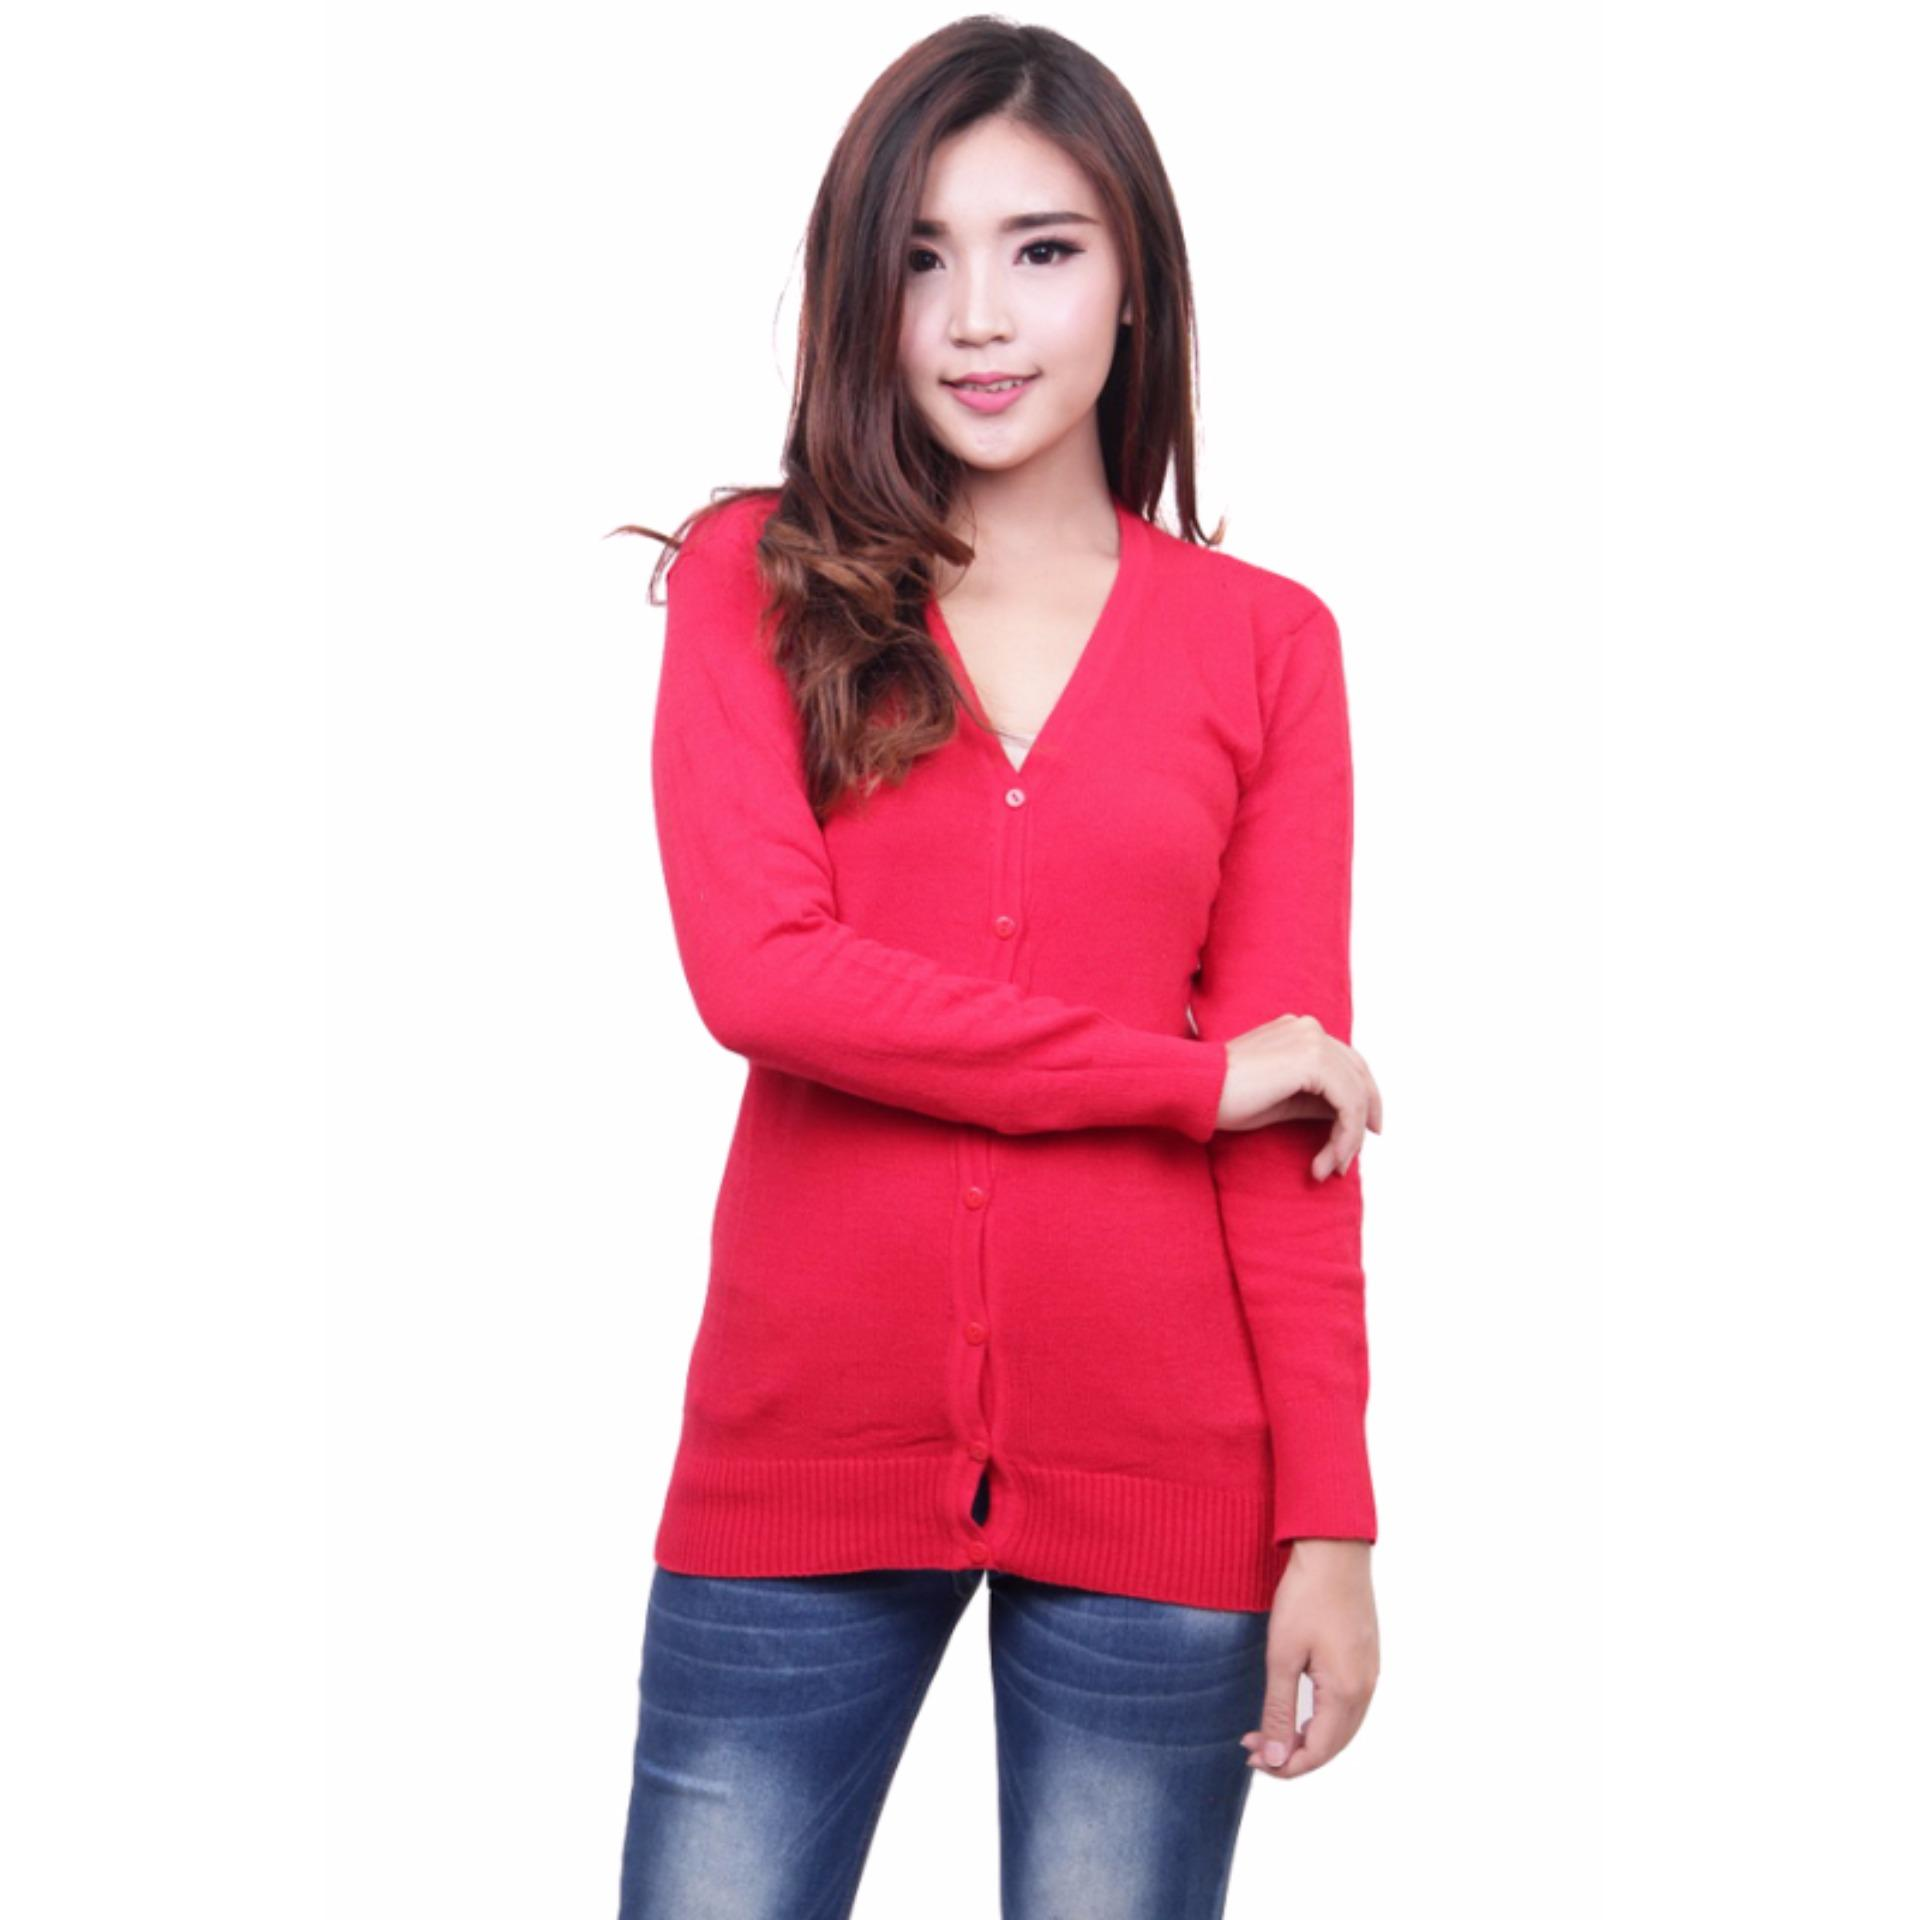 Jual Beli Online Quincylabel Basic Cardigan Red